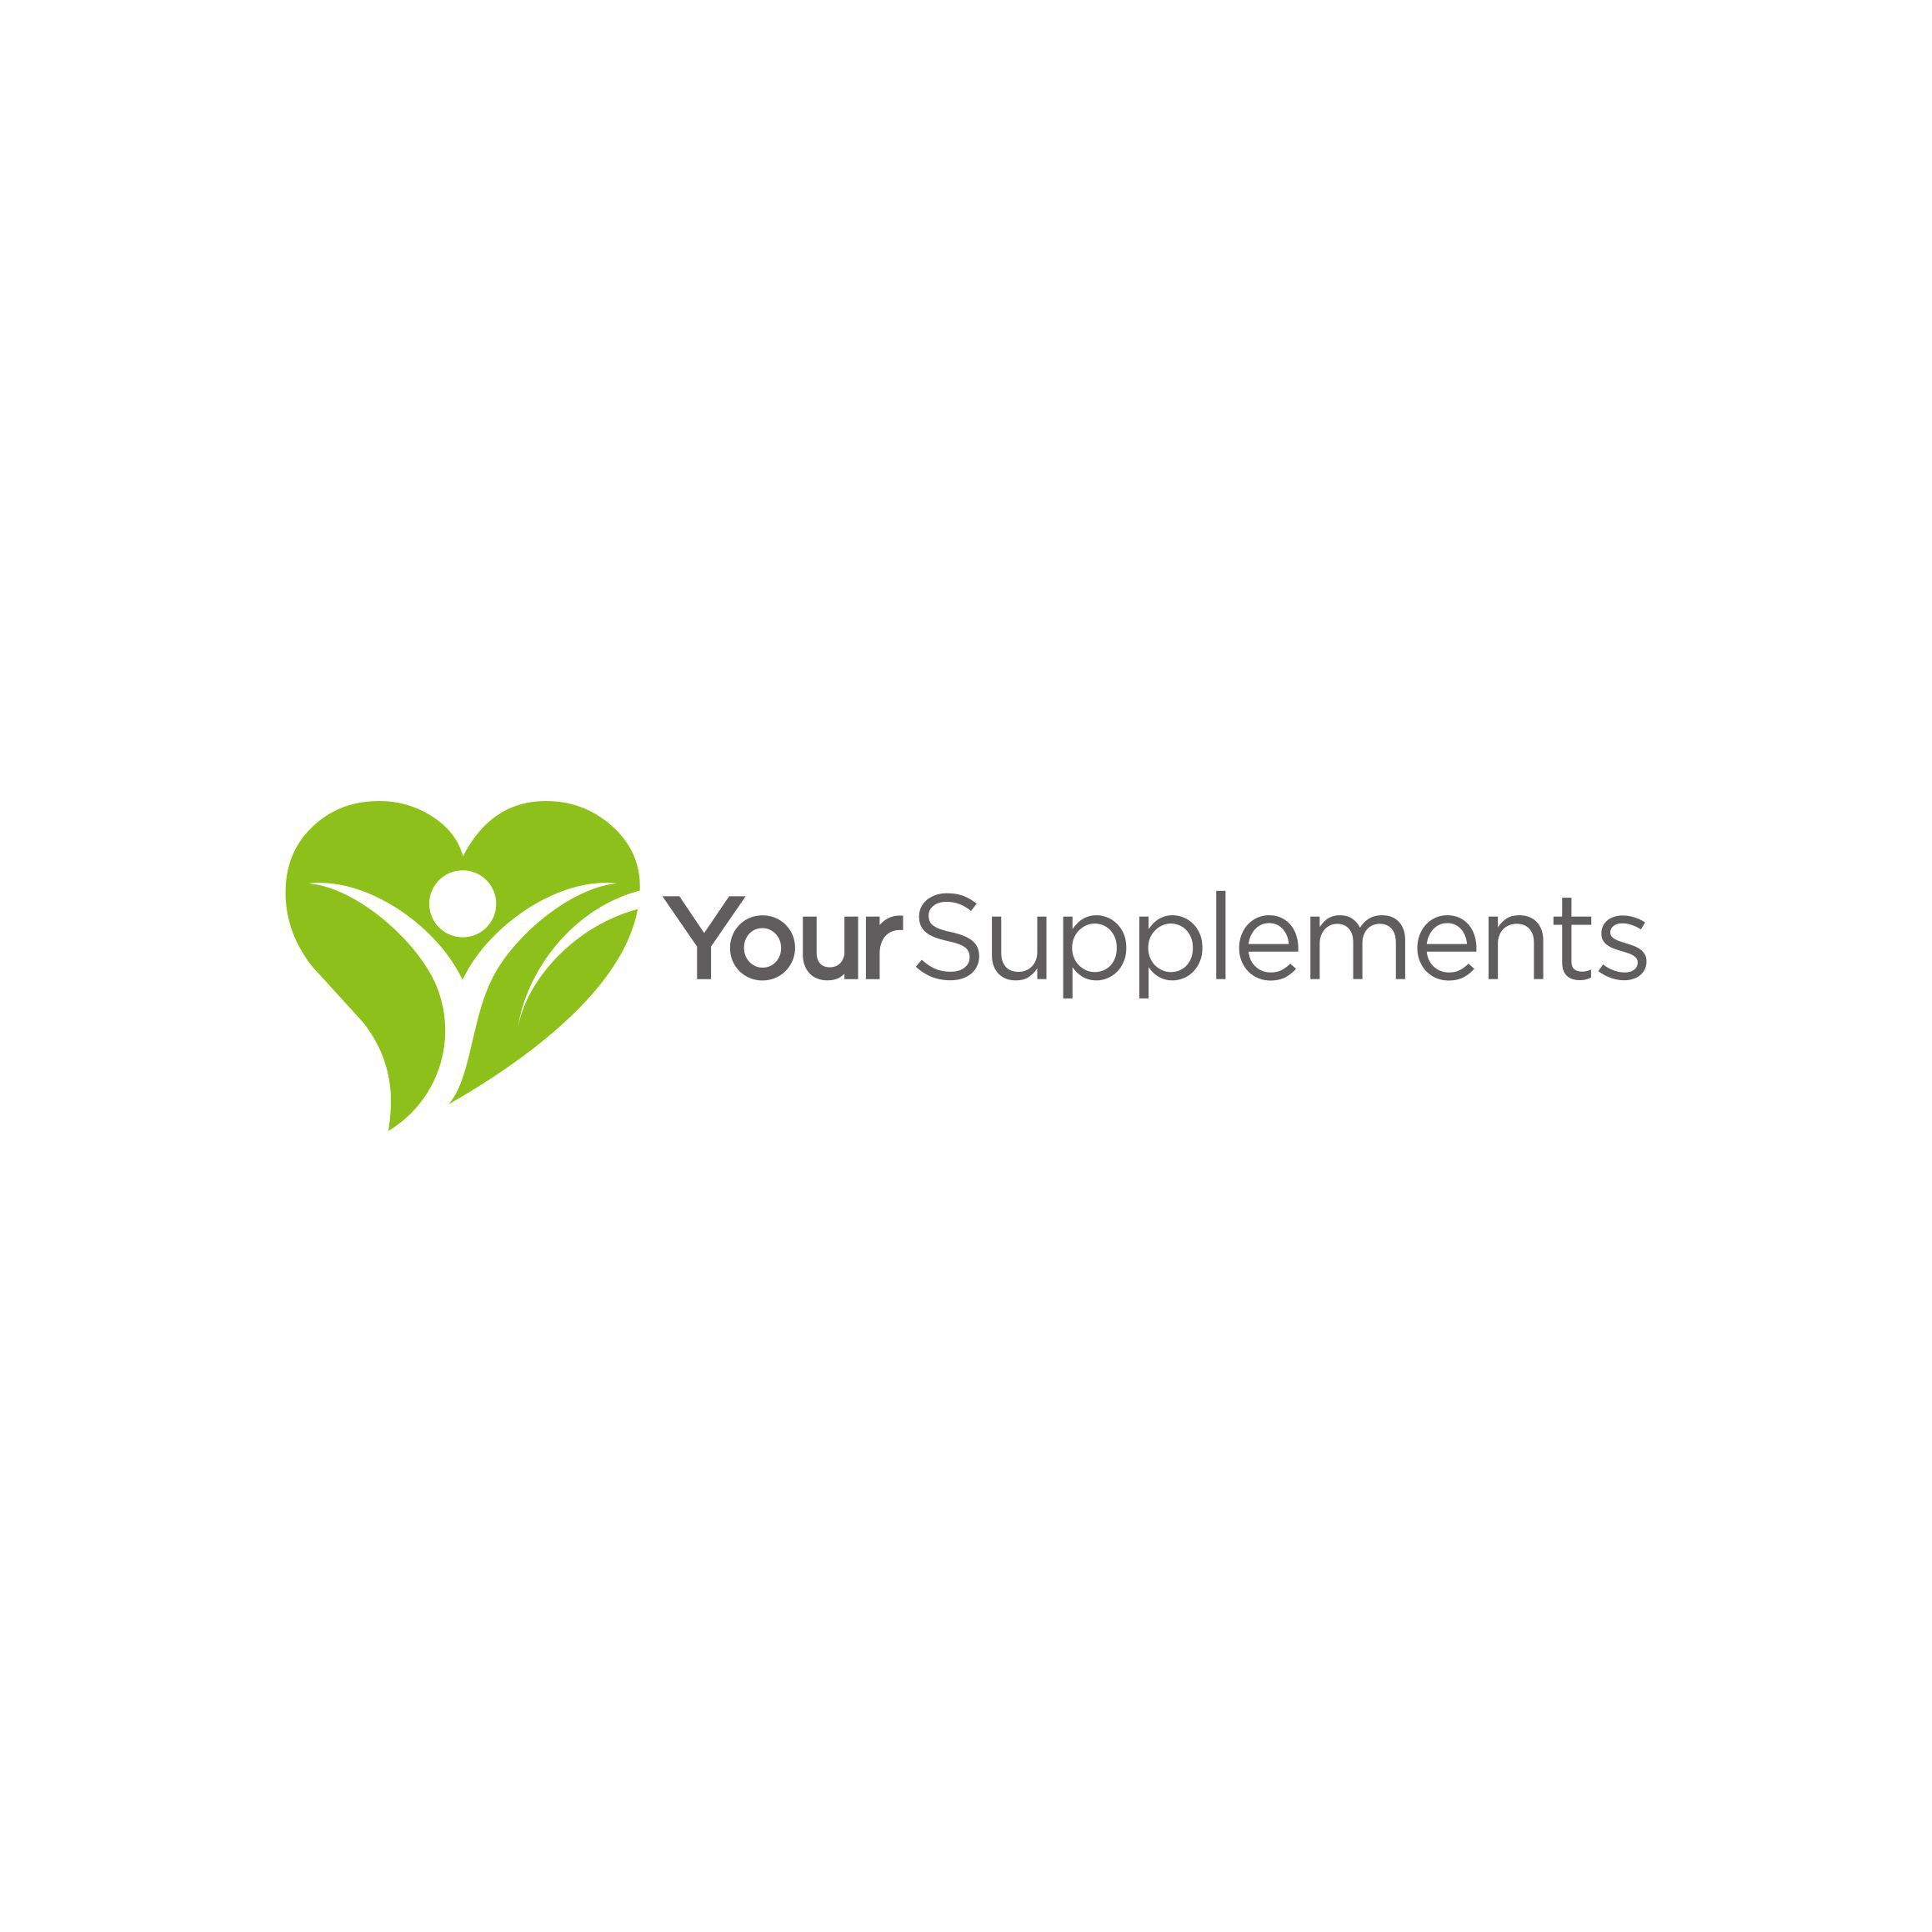 Design a creative and eye-catching logo for Your Supplements